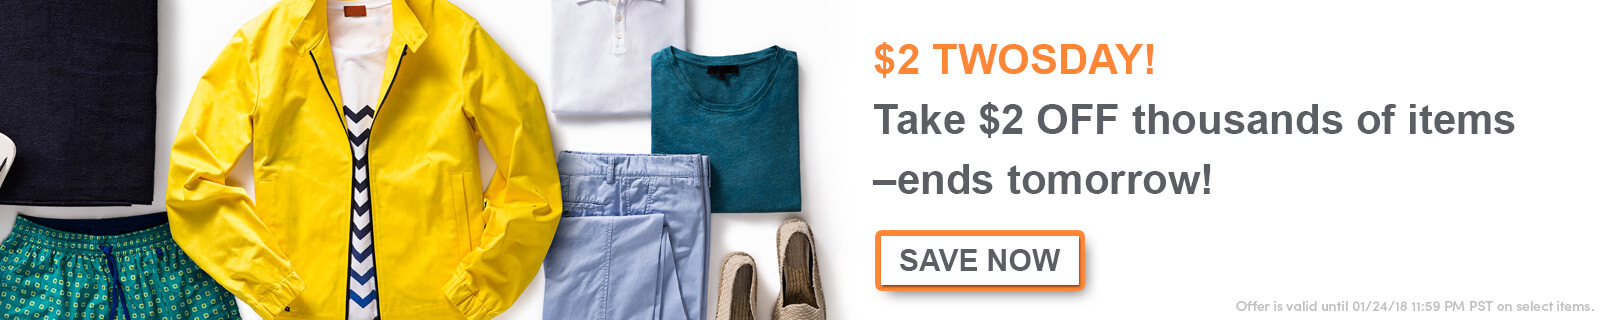 $2 Twosday! Take $2 OFF thousands of items–ends tomorrow! [Save now]